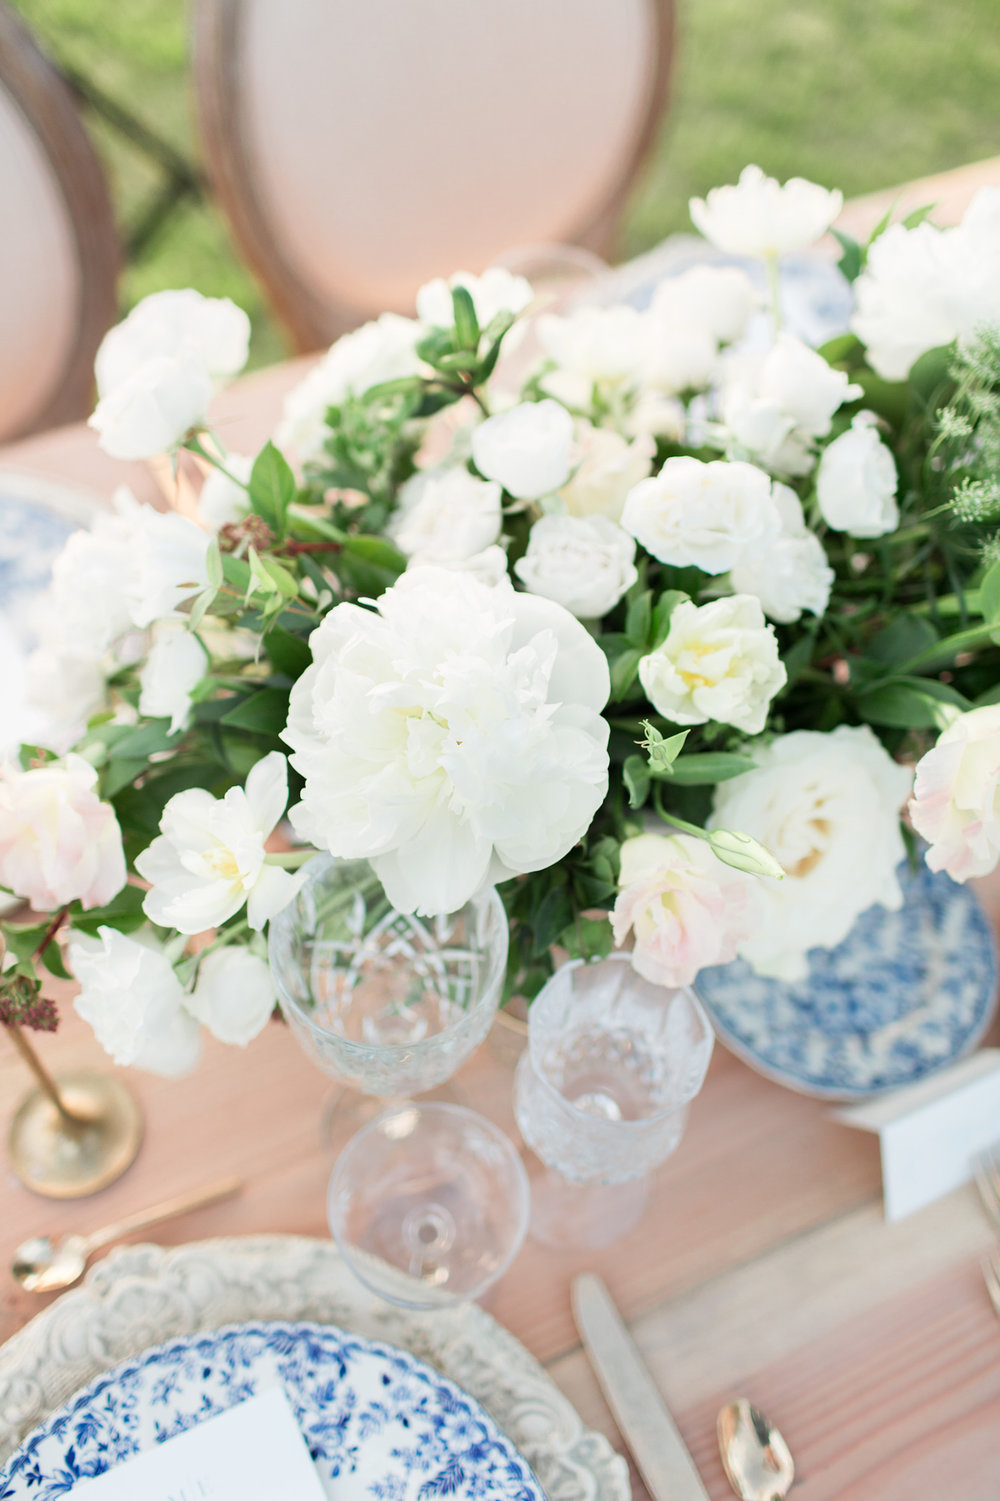 White peony & garden rose centerpiece with blue chinoiserie place settings by Compass Floral | Rancho Valencia, Rancho Santa Fe.